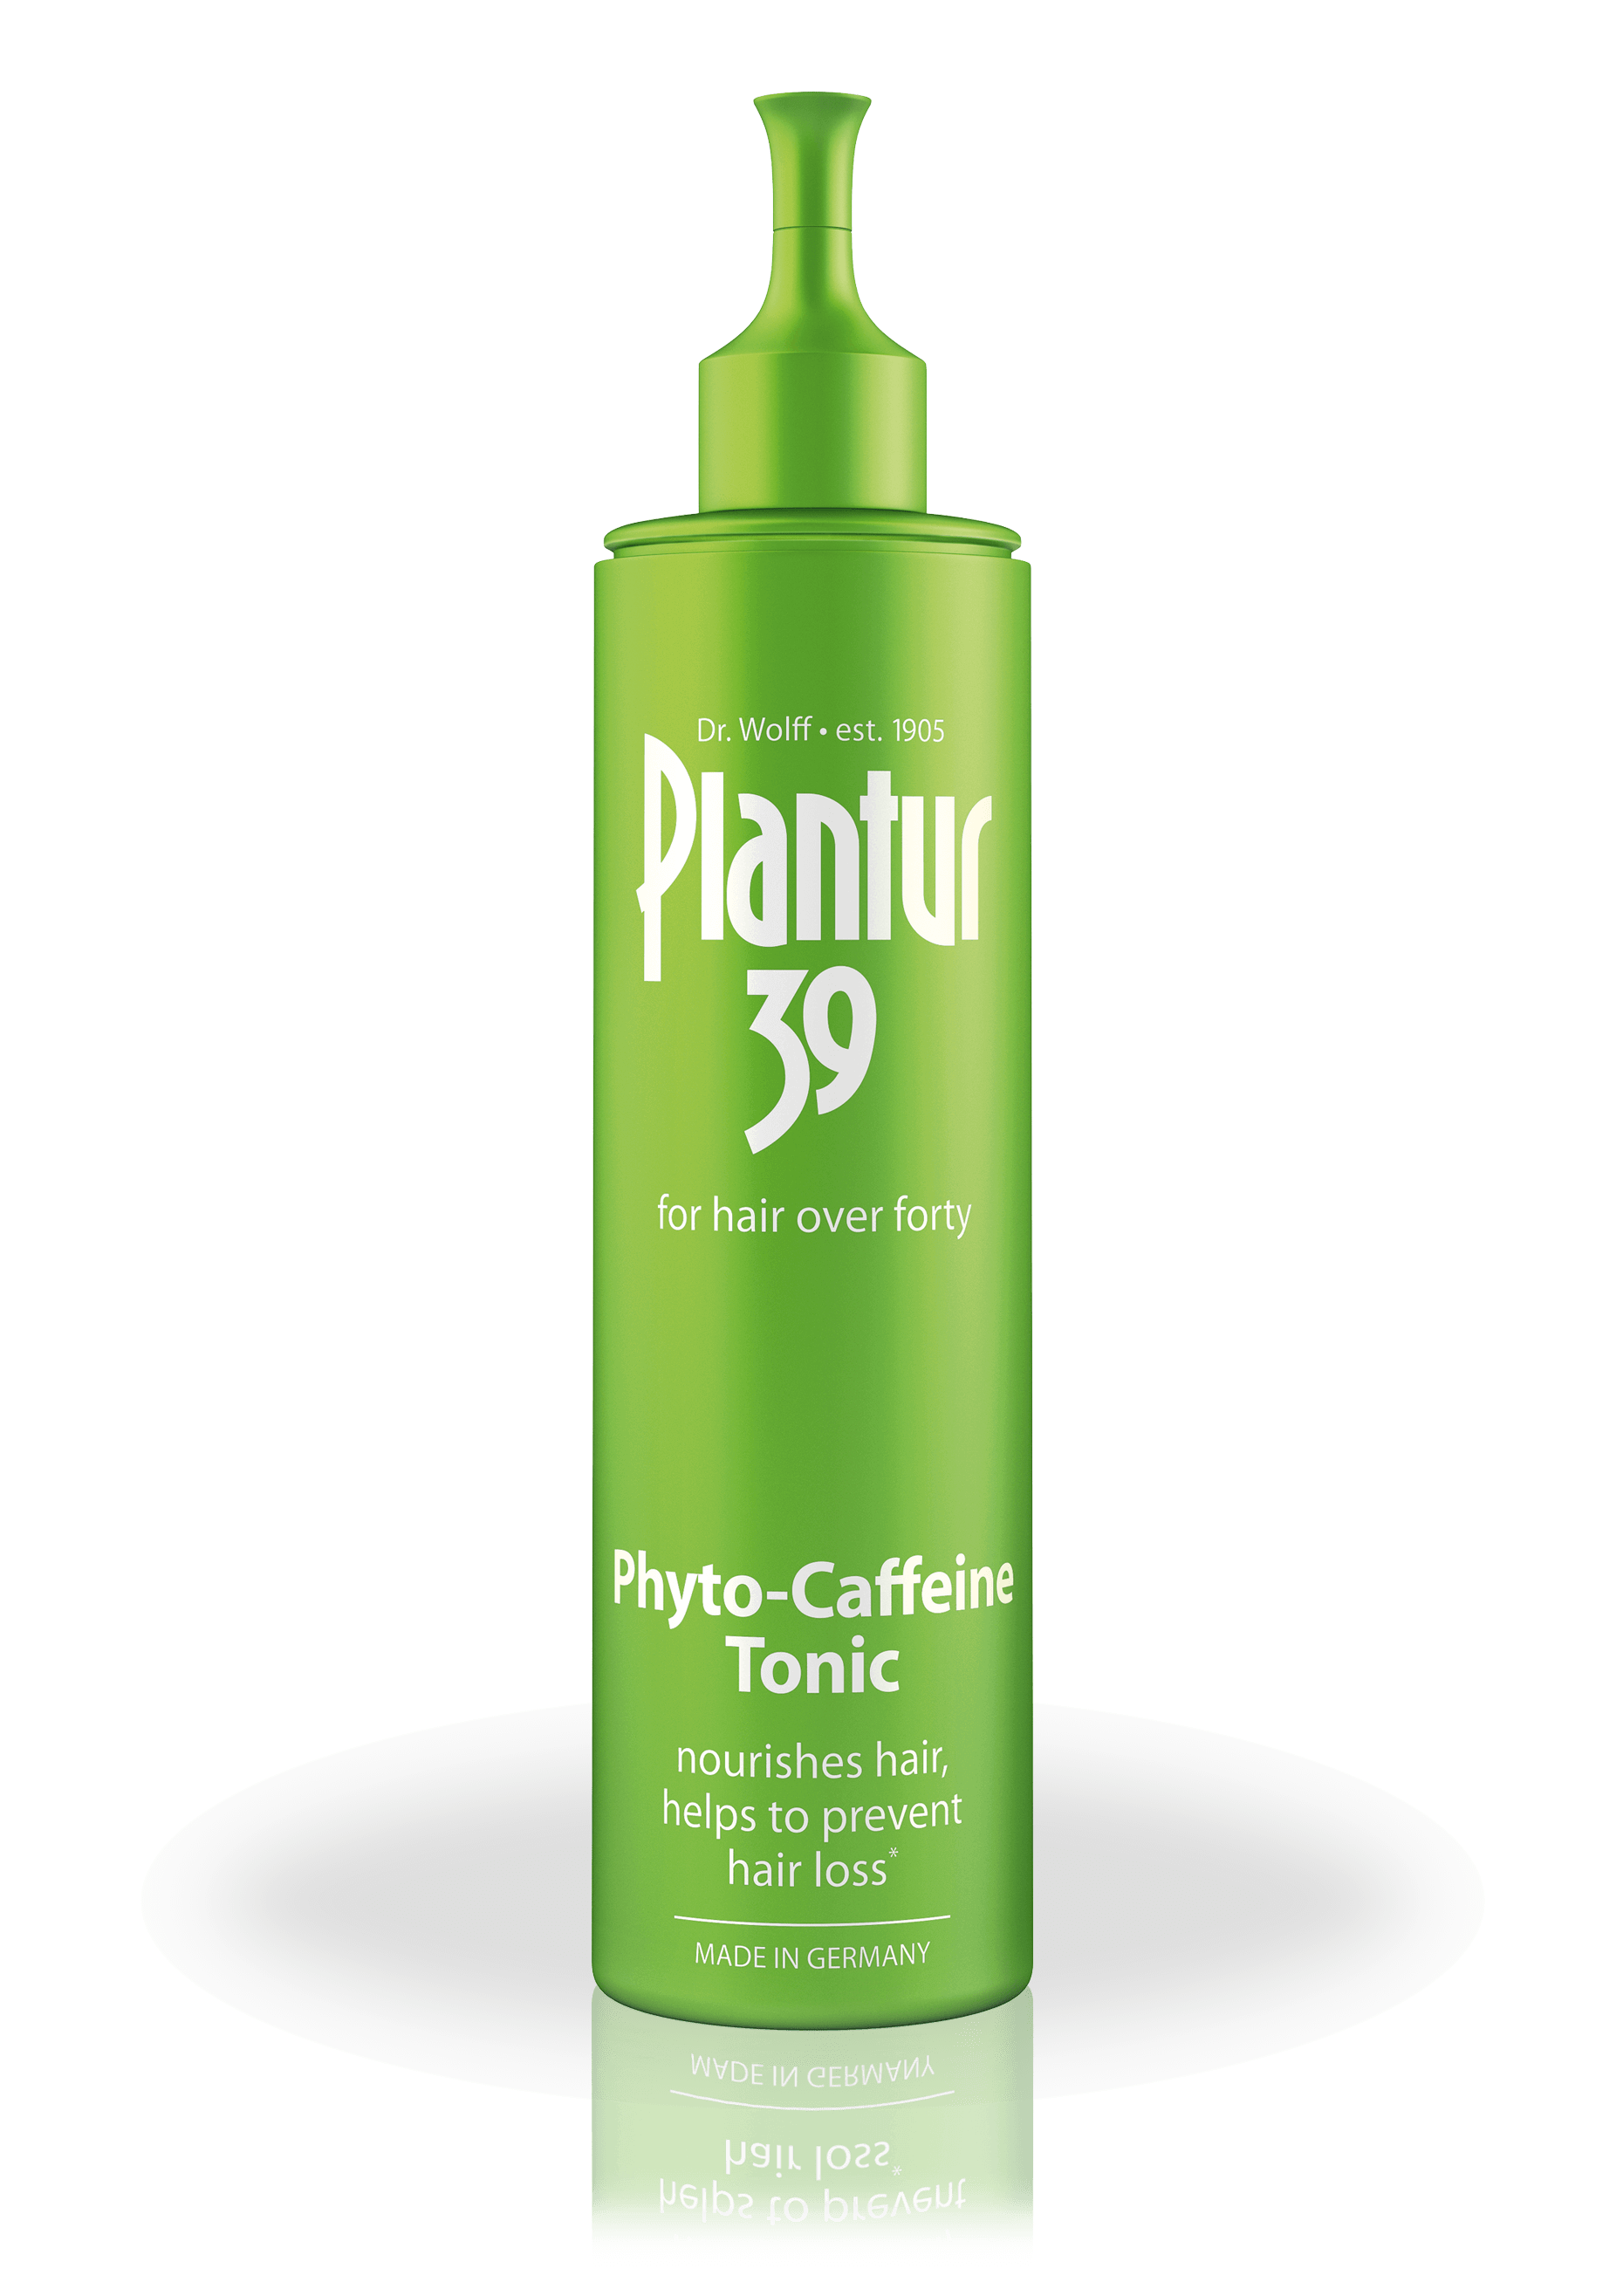 39 Best Images About South Pacific On Pinterest: Plantur 39 Phyto-Caffeine Tonic Helps To Prevent Hair Loss